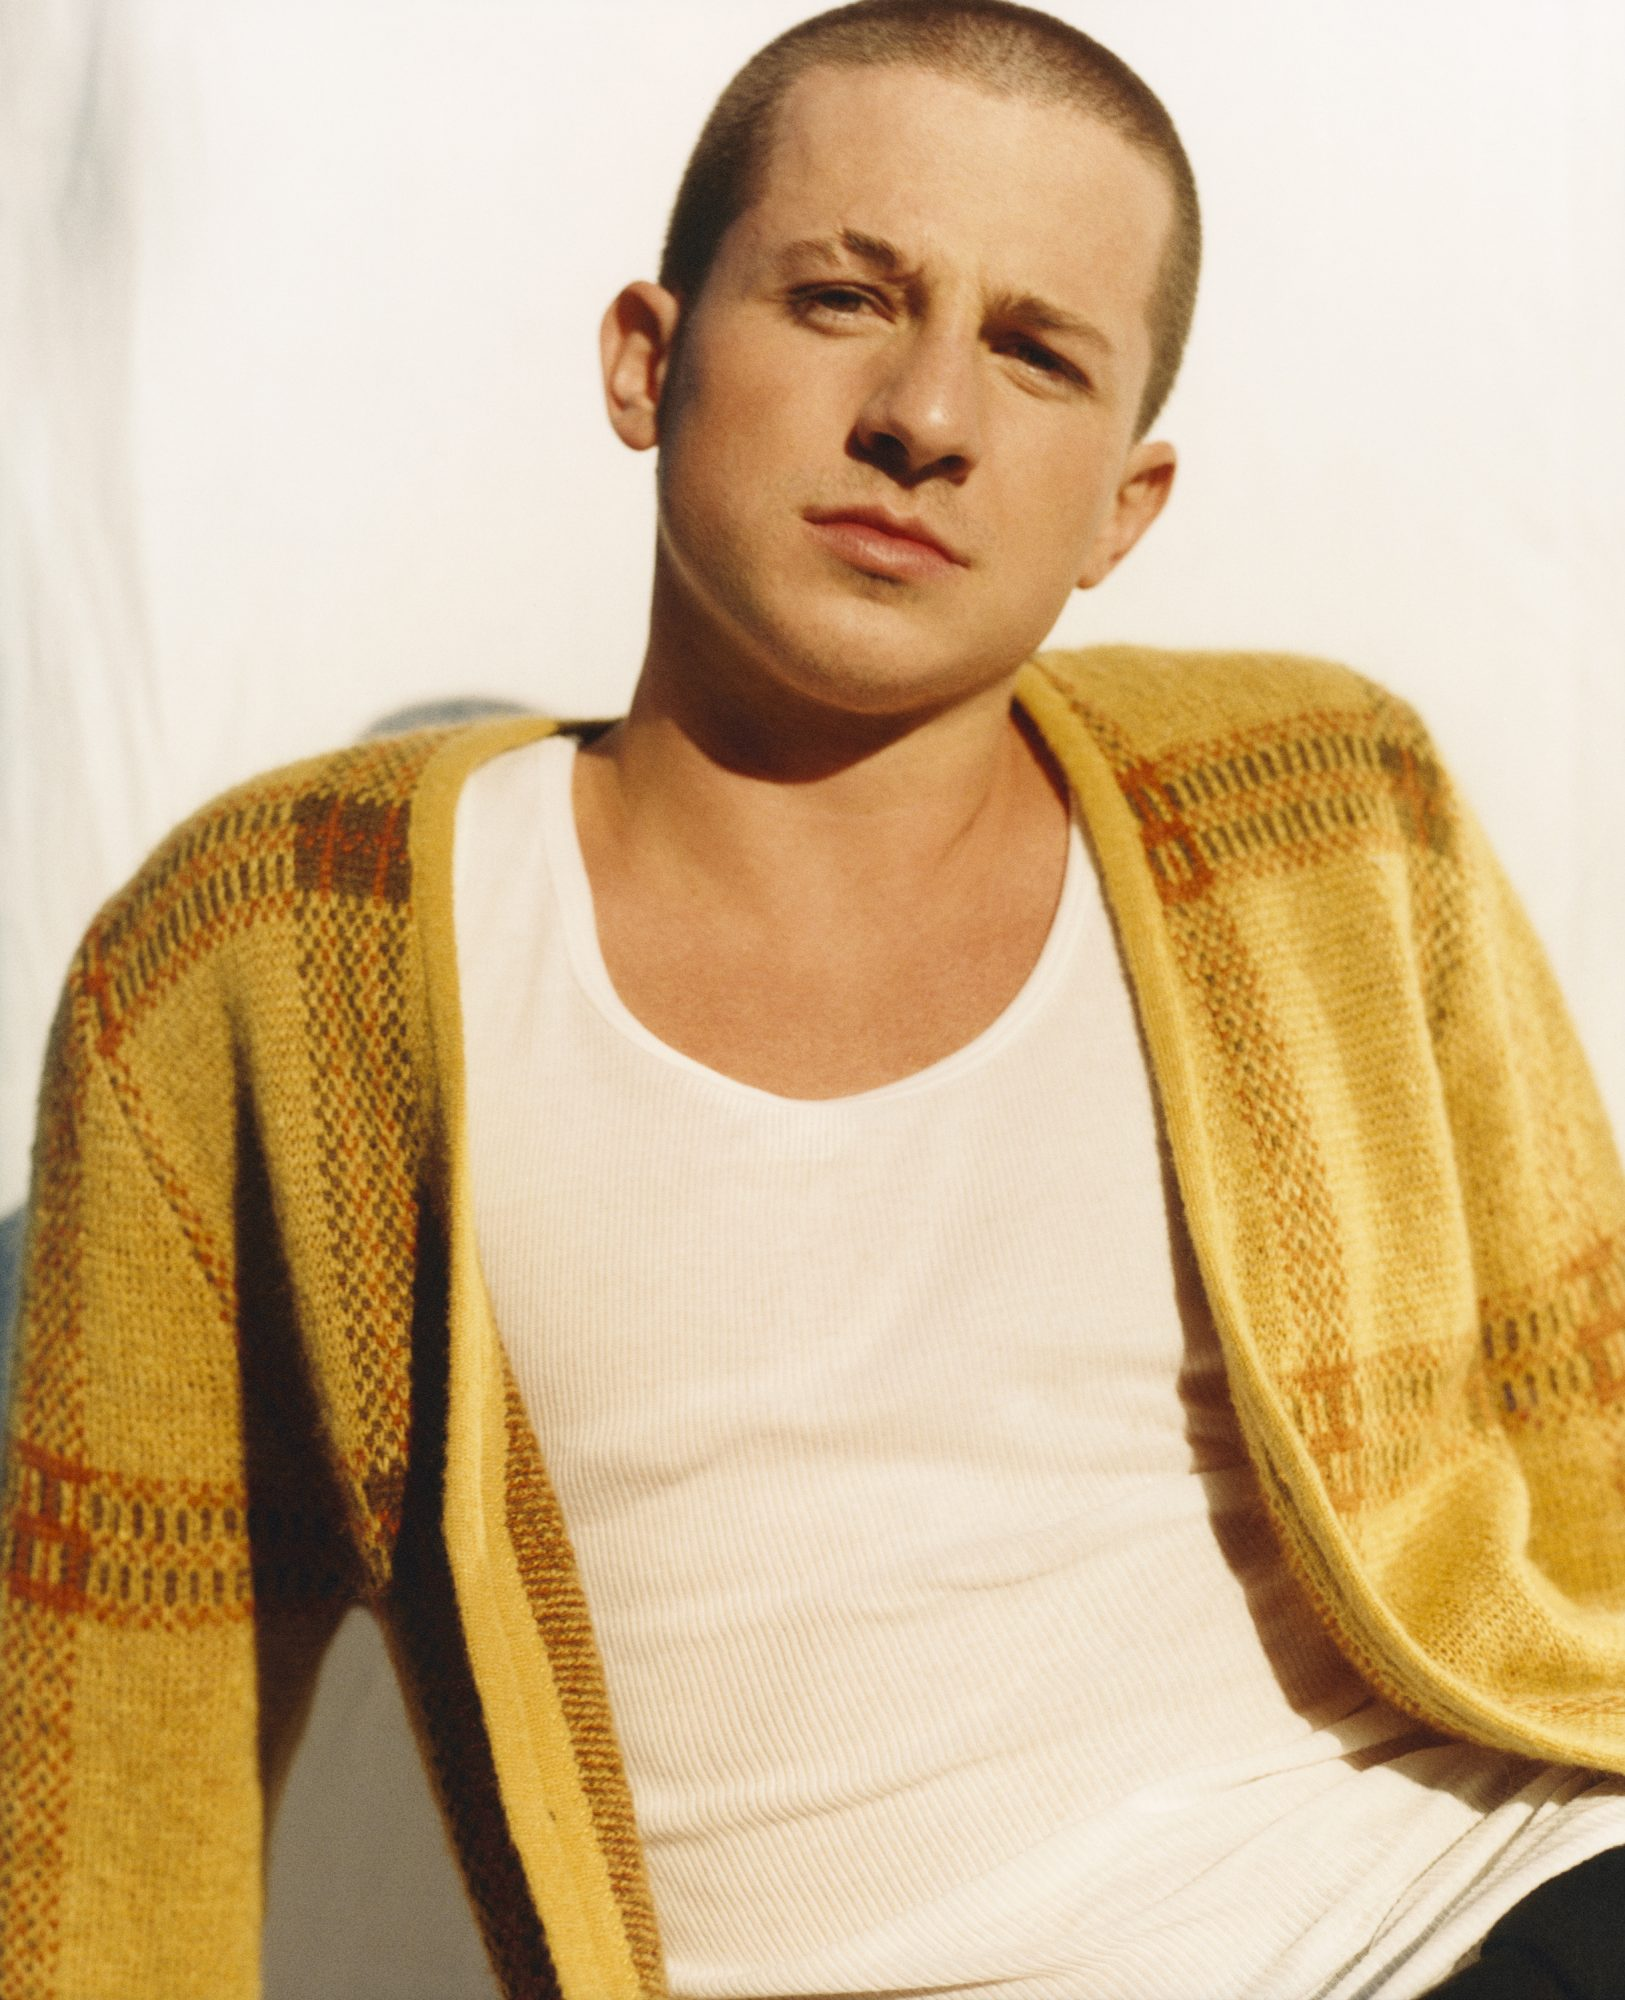 Charlie-Puth-Publicity-03-07-30-19